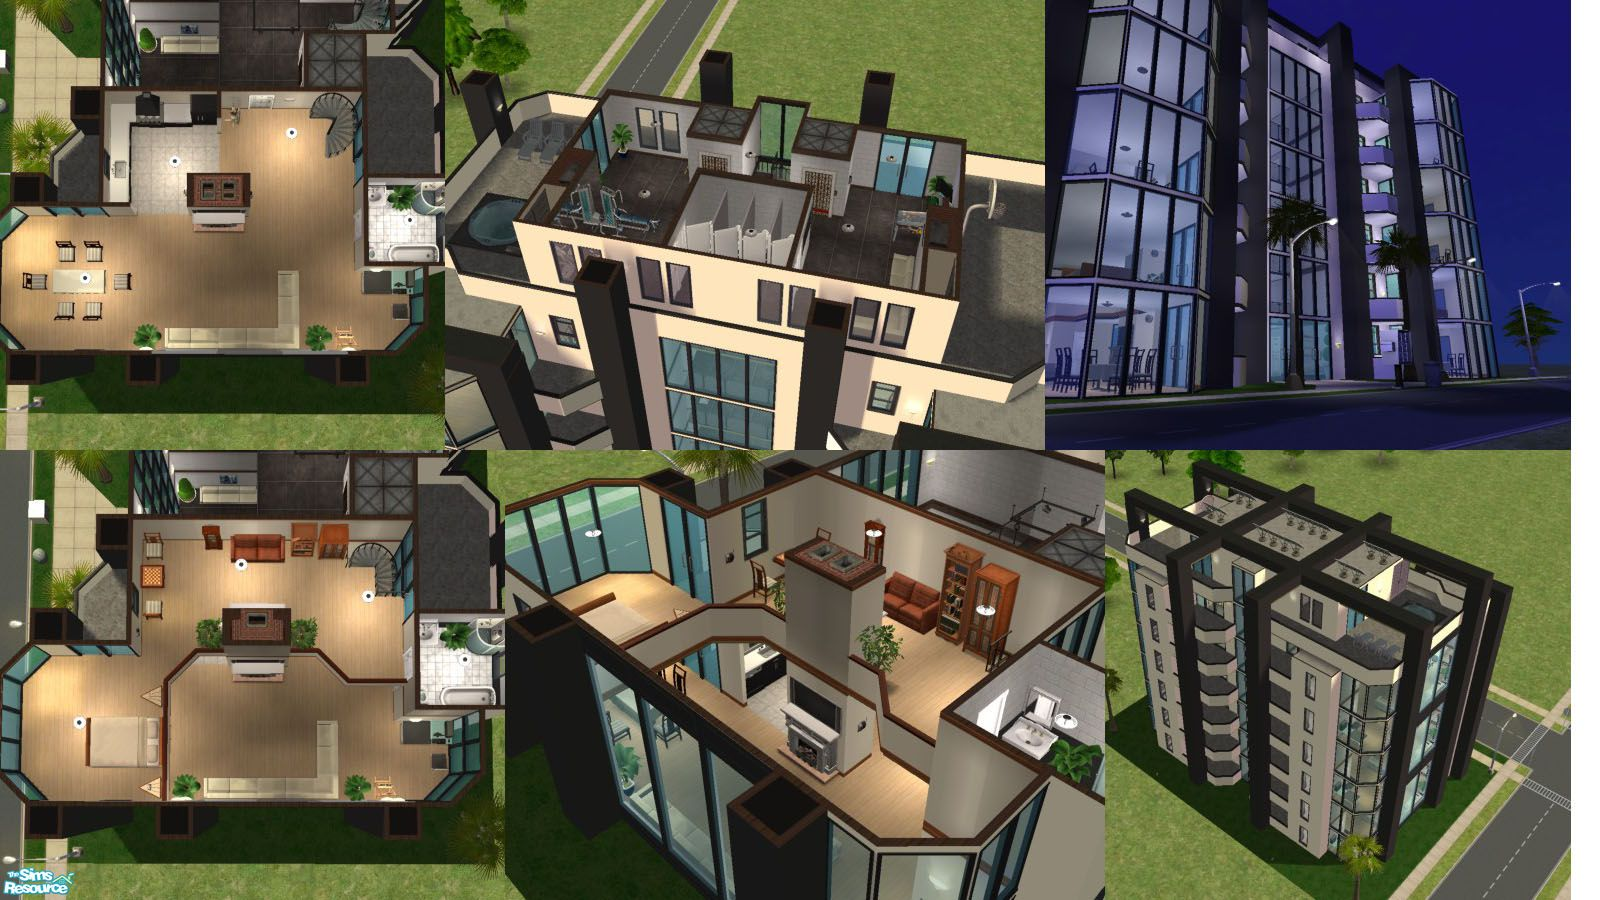 This highrise consists of 6 twostory suites, with open